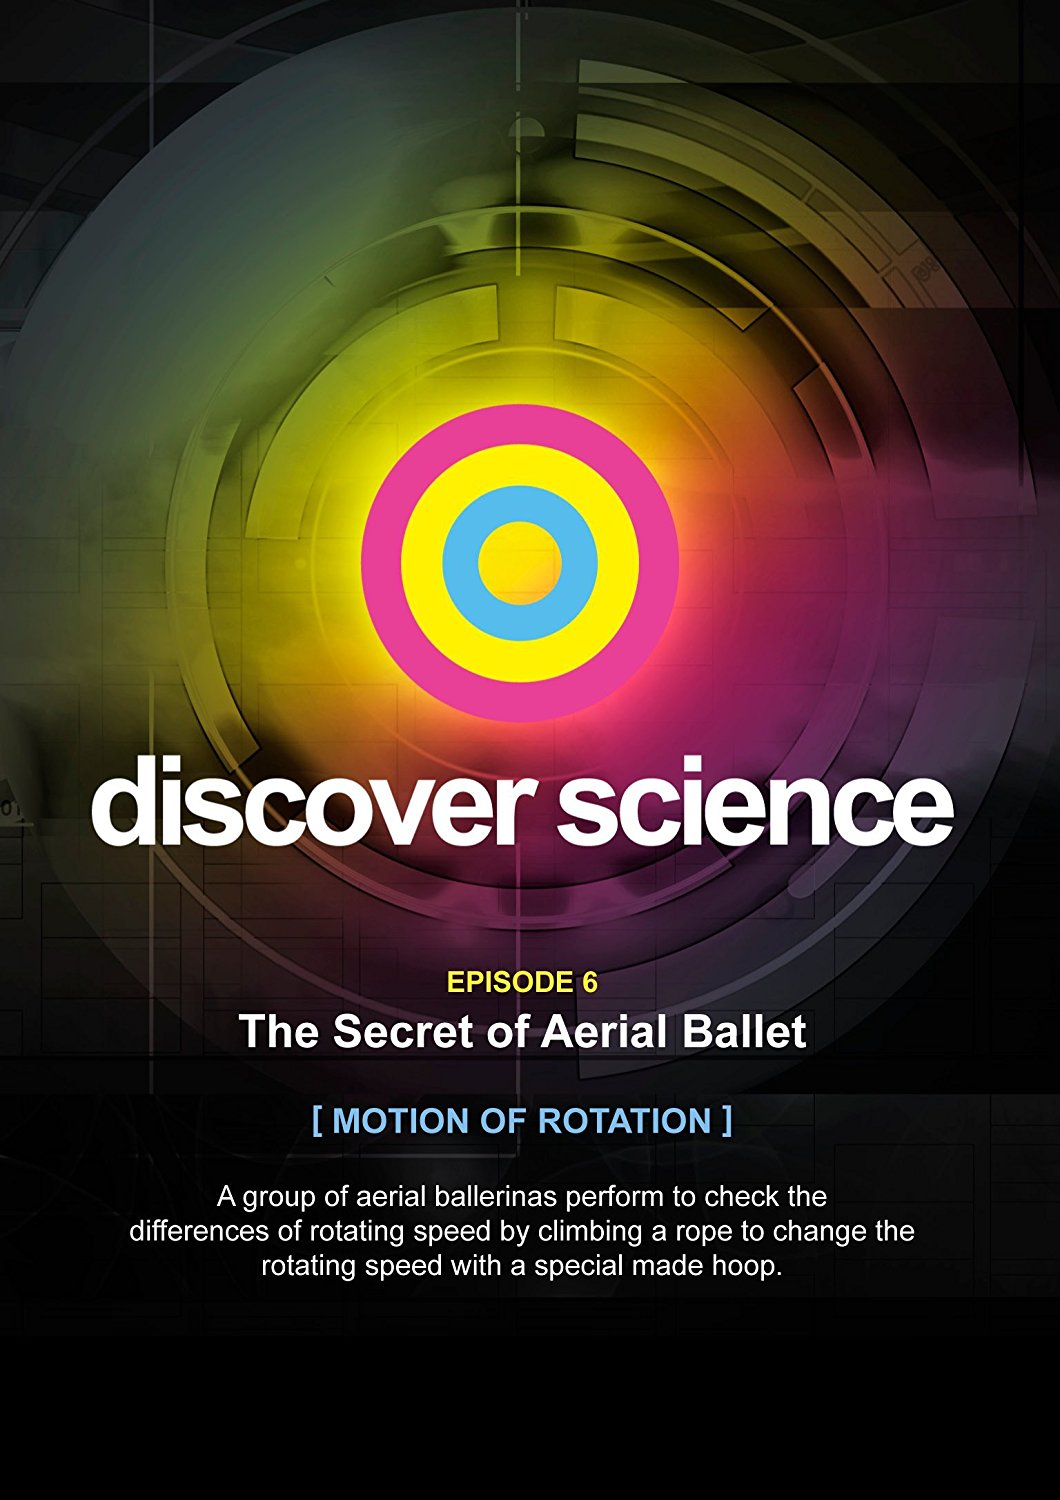 Discover Science: The Secret of Aerial Ballet - Motion of Rotation